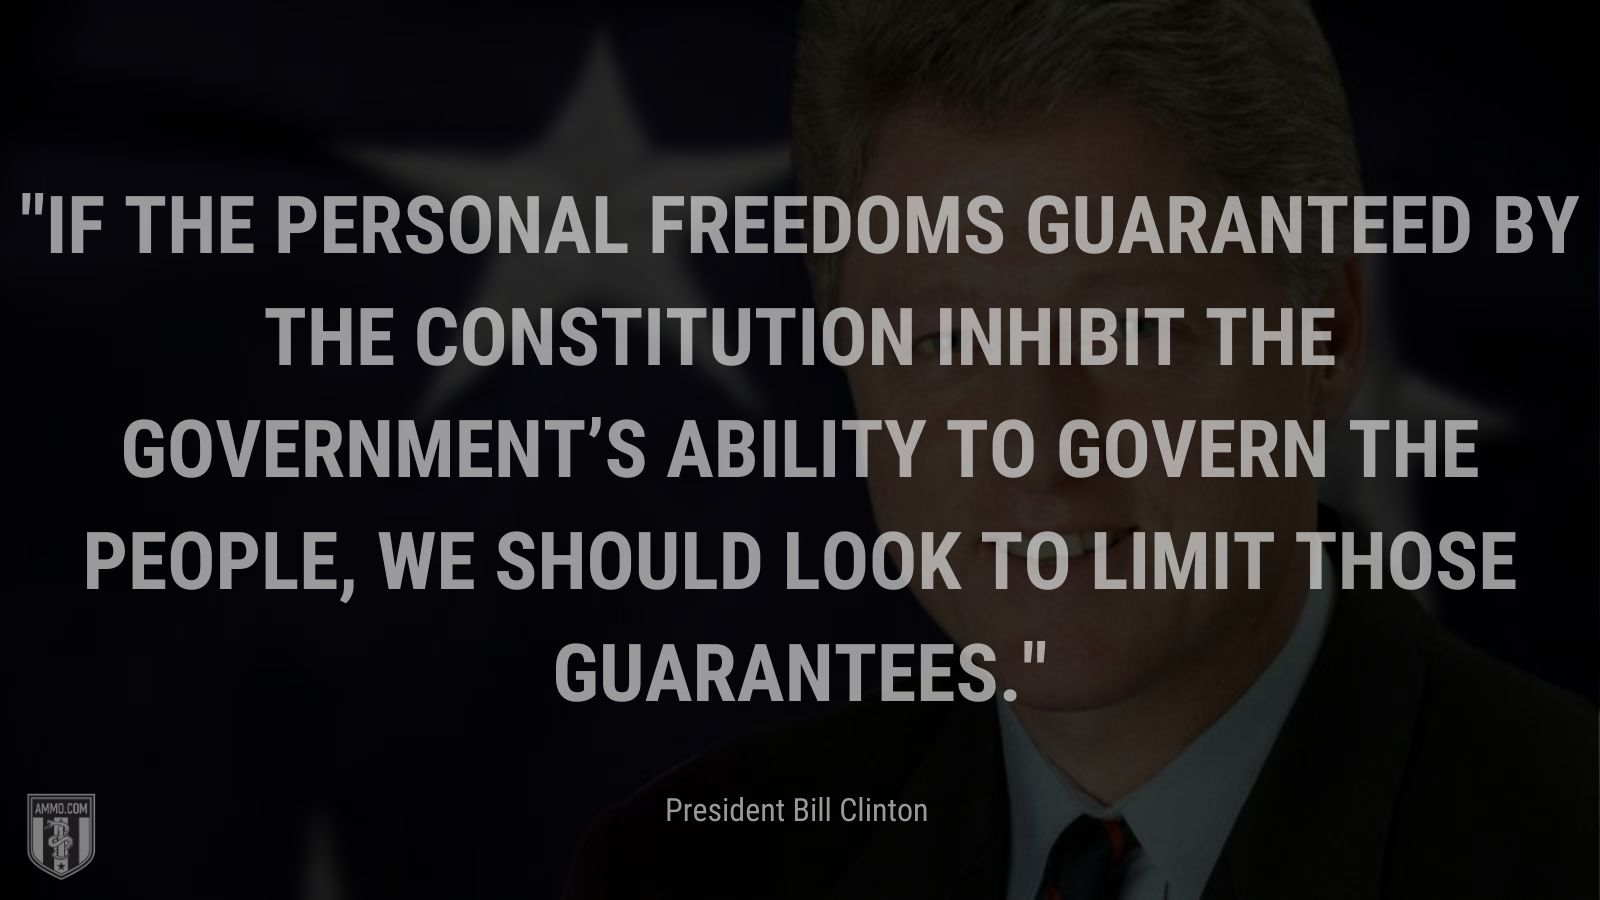 """""""If the personal freedoms guaranteed by the Constitution inhibit the government's ability to govern the people, we should look to limit those guarantees."""" -President Bill Clinton"""